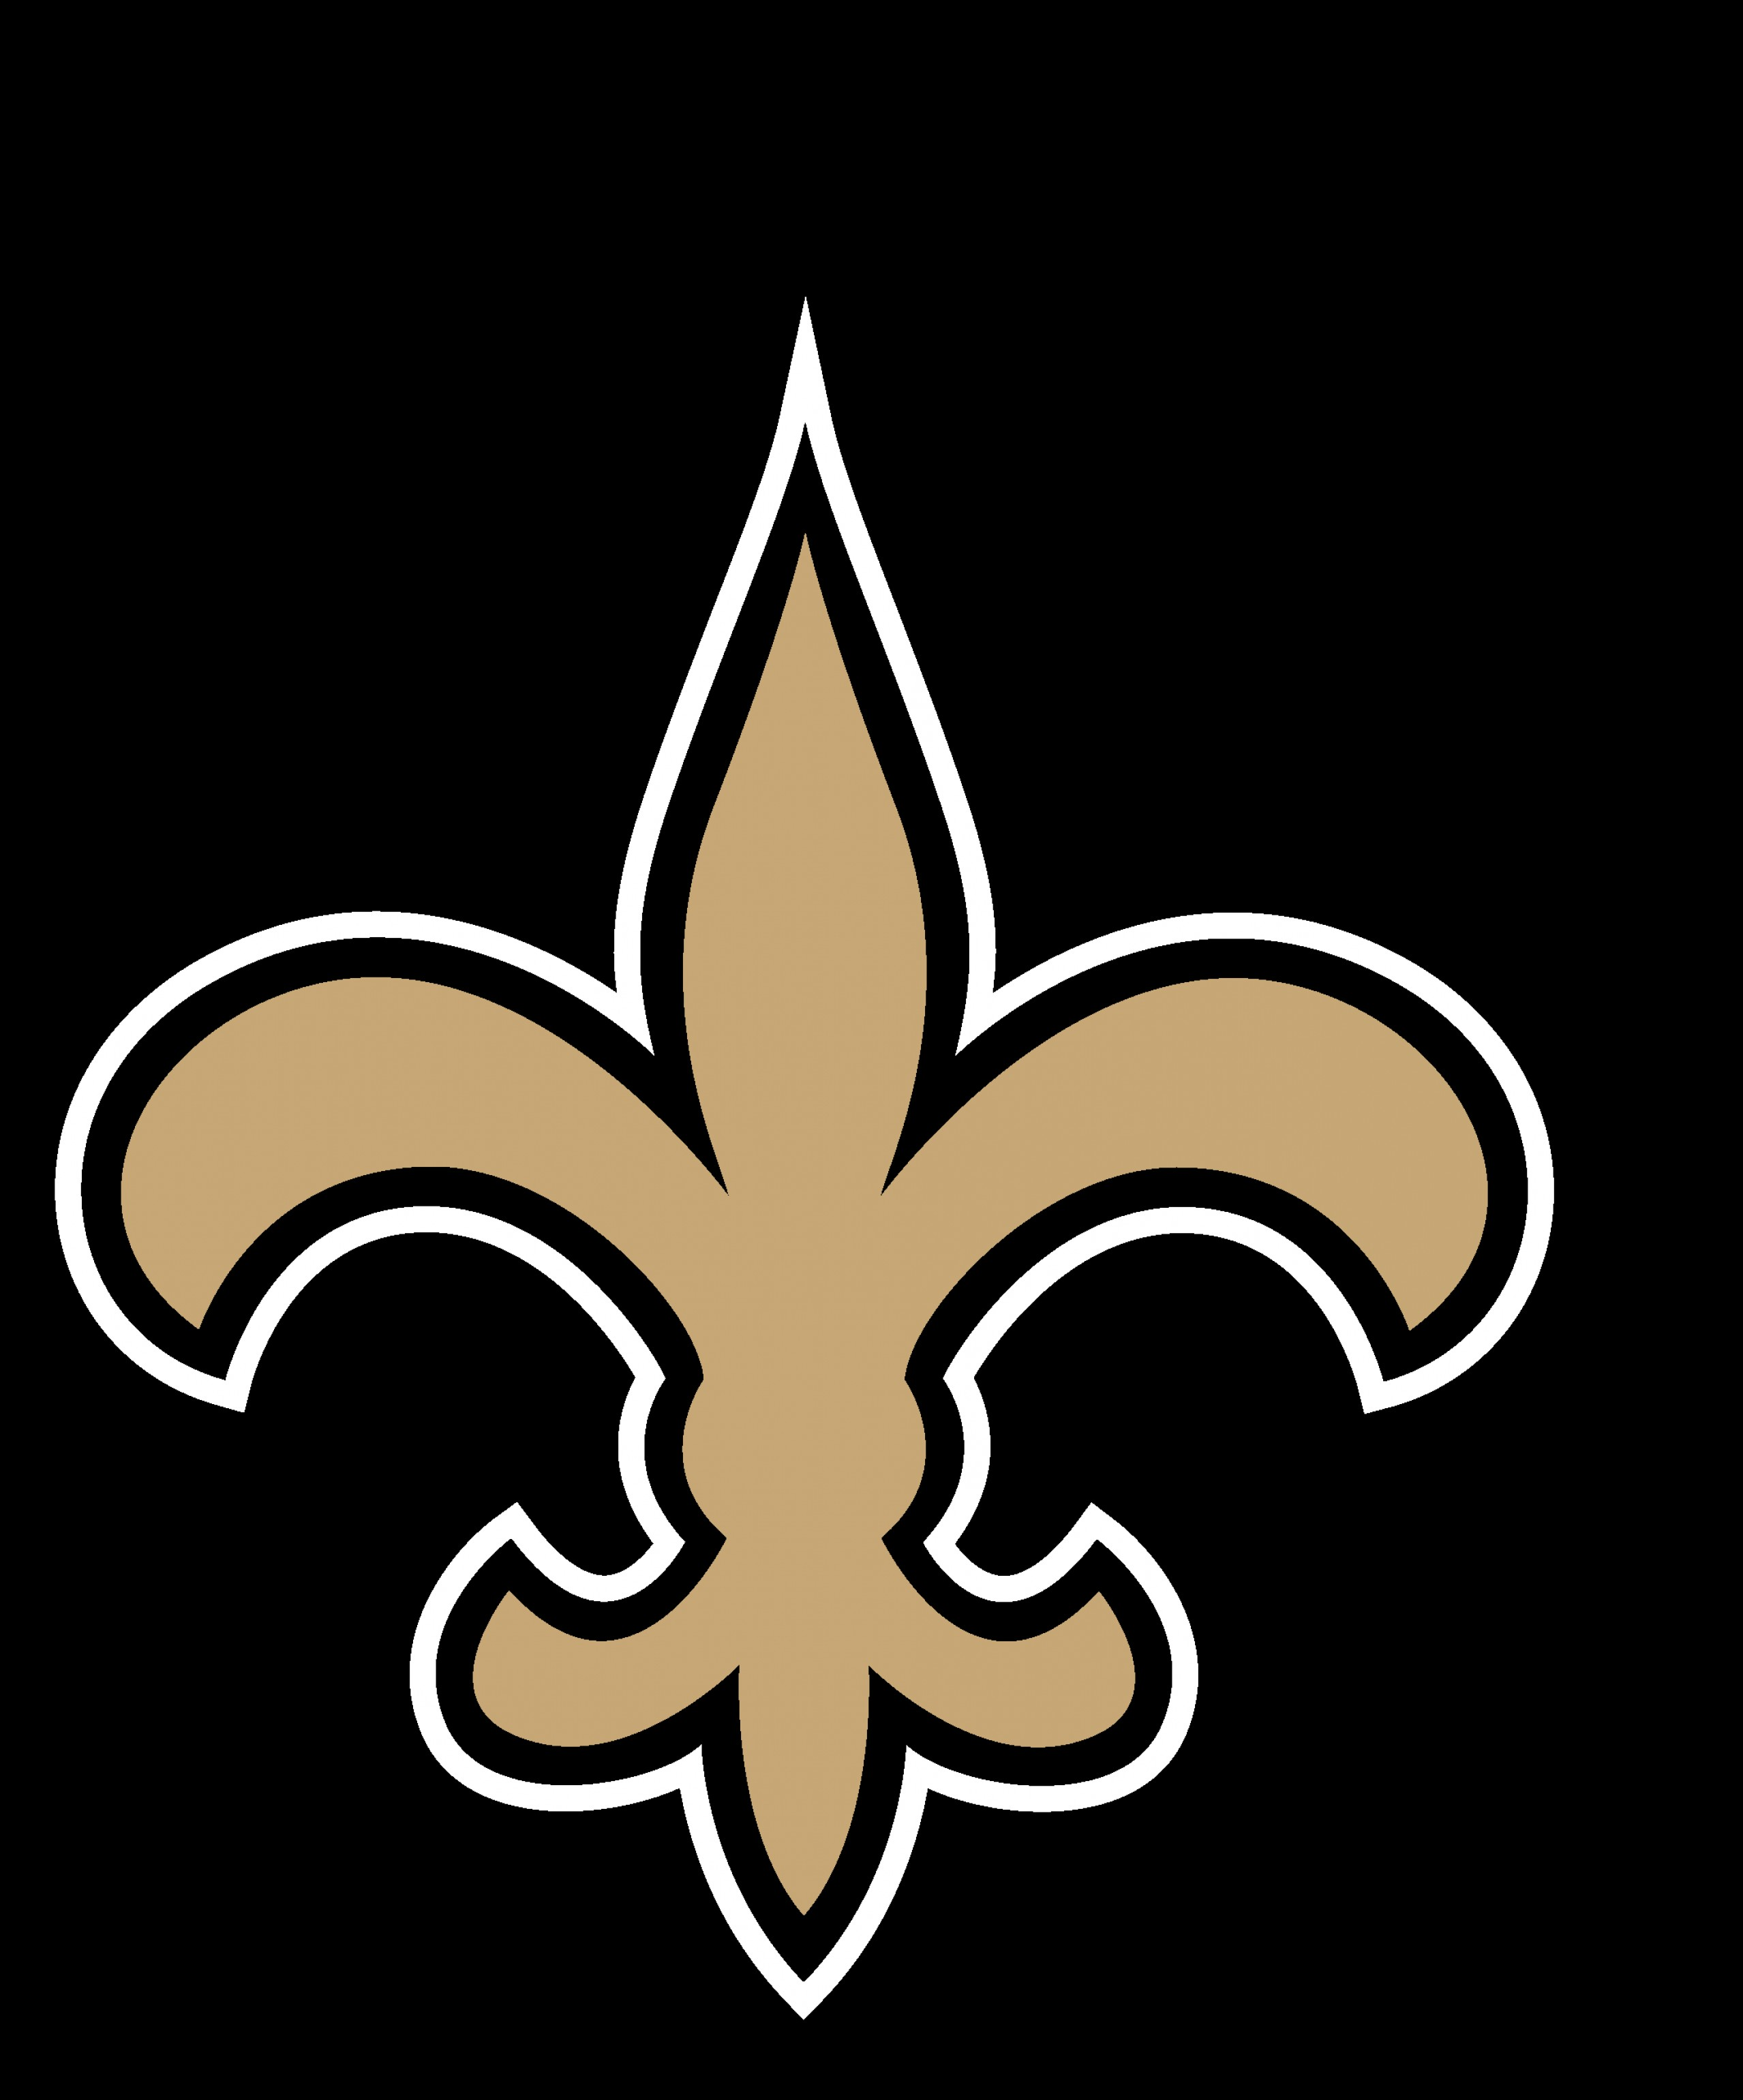 saints clipart at getdrawings com free for personal use saints rh getdrawings com new orleans saints clip art free jpg new orleans saints logo clip art